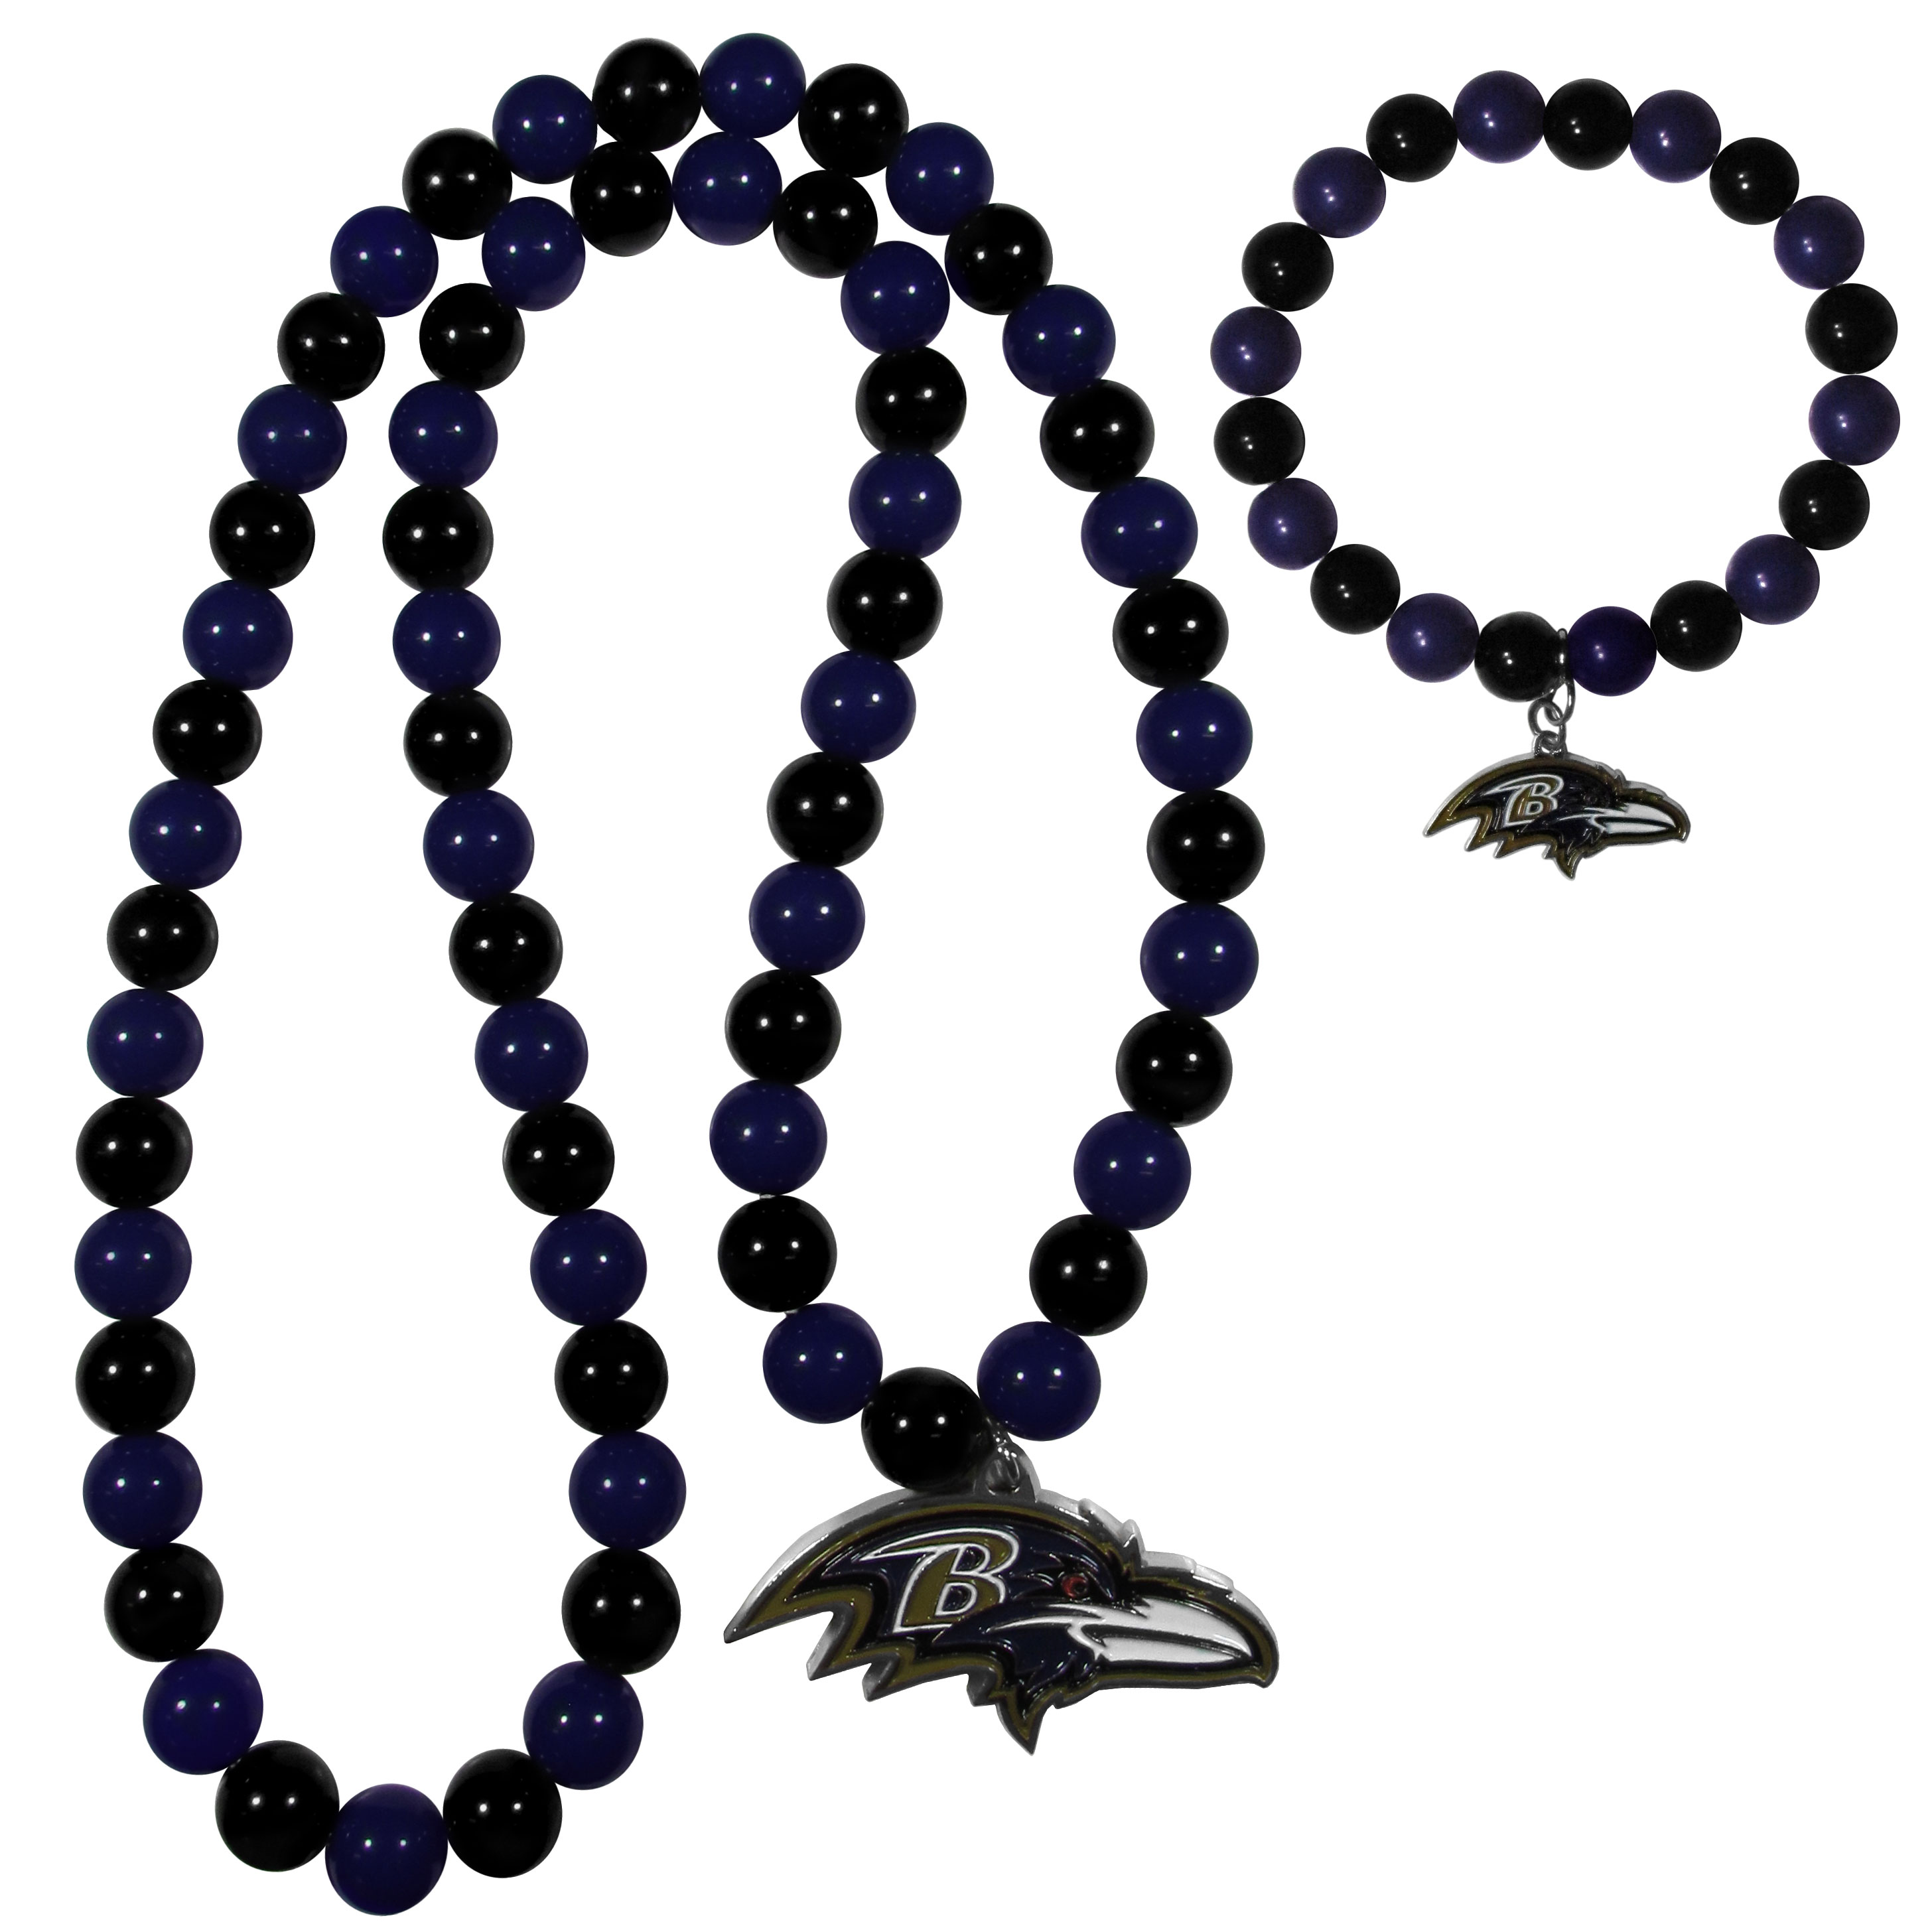 Baltimore Ravens Fan Bead Necklace and Bracelet Set - These fun and colorful Baltimore Ravens fan bead jewelry pieces are an eyecatching way to show off your team spirit. The striking necklace is a 24 inch string of alternating team colored beads with a large team pendant. The mathcing bracelet has alternating team colored beads on a stretch cord and features a matching team charm.